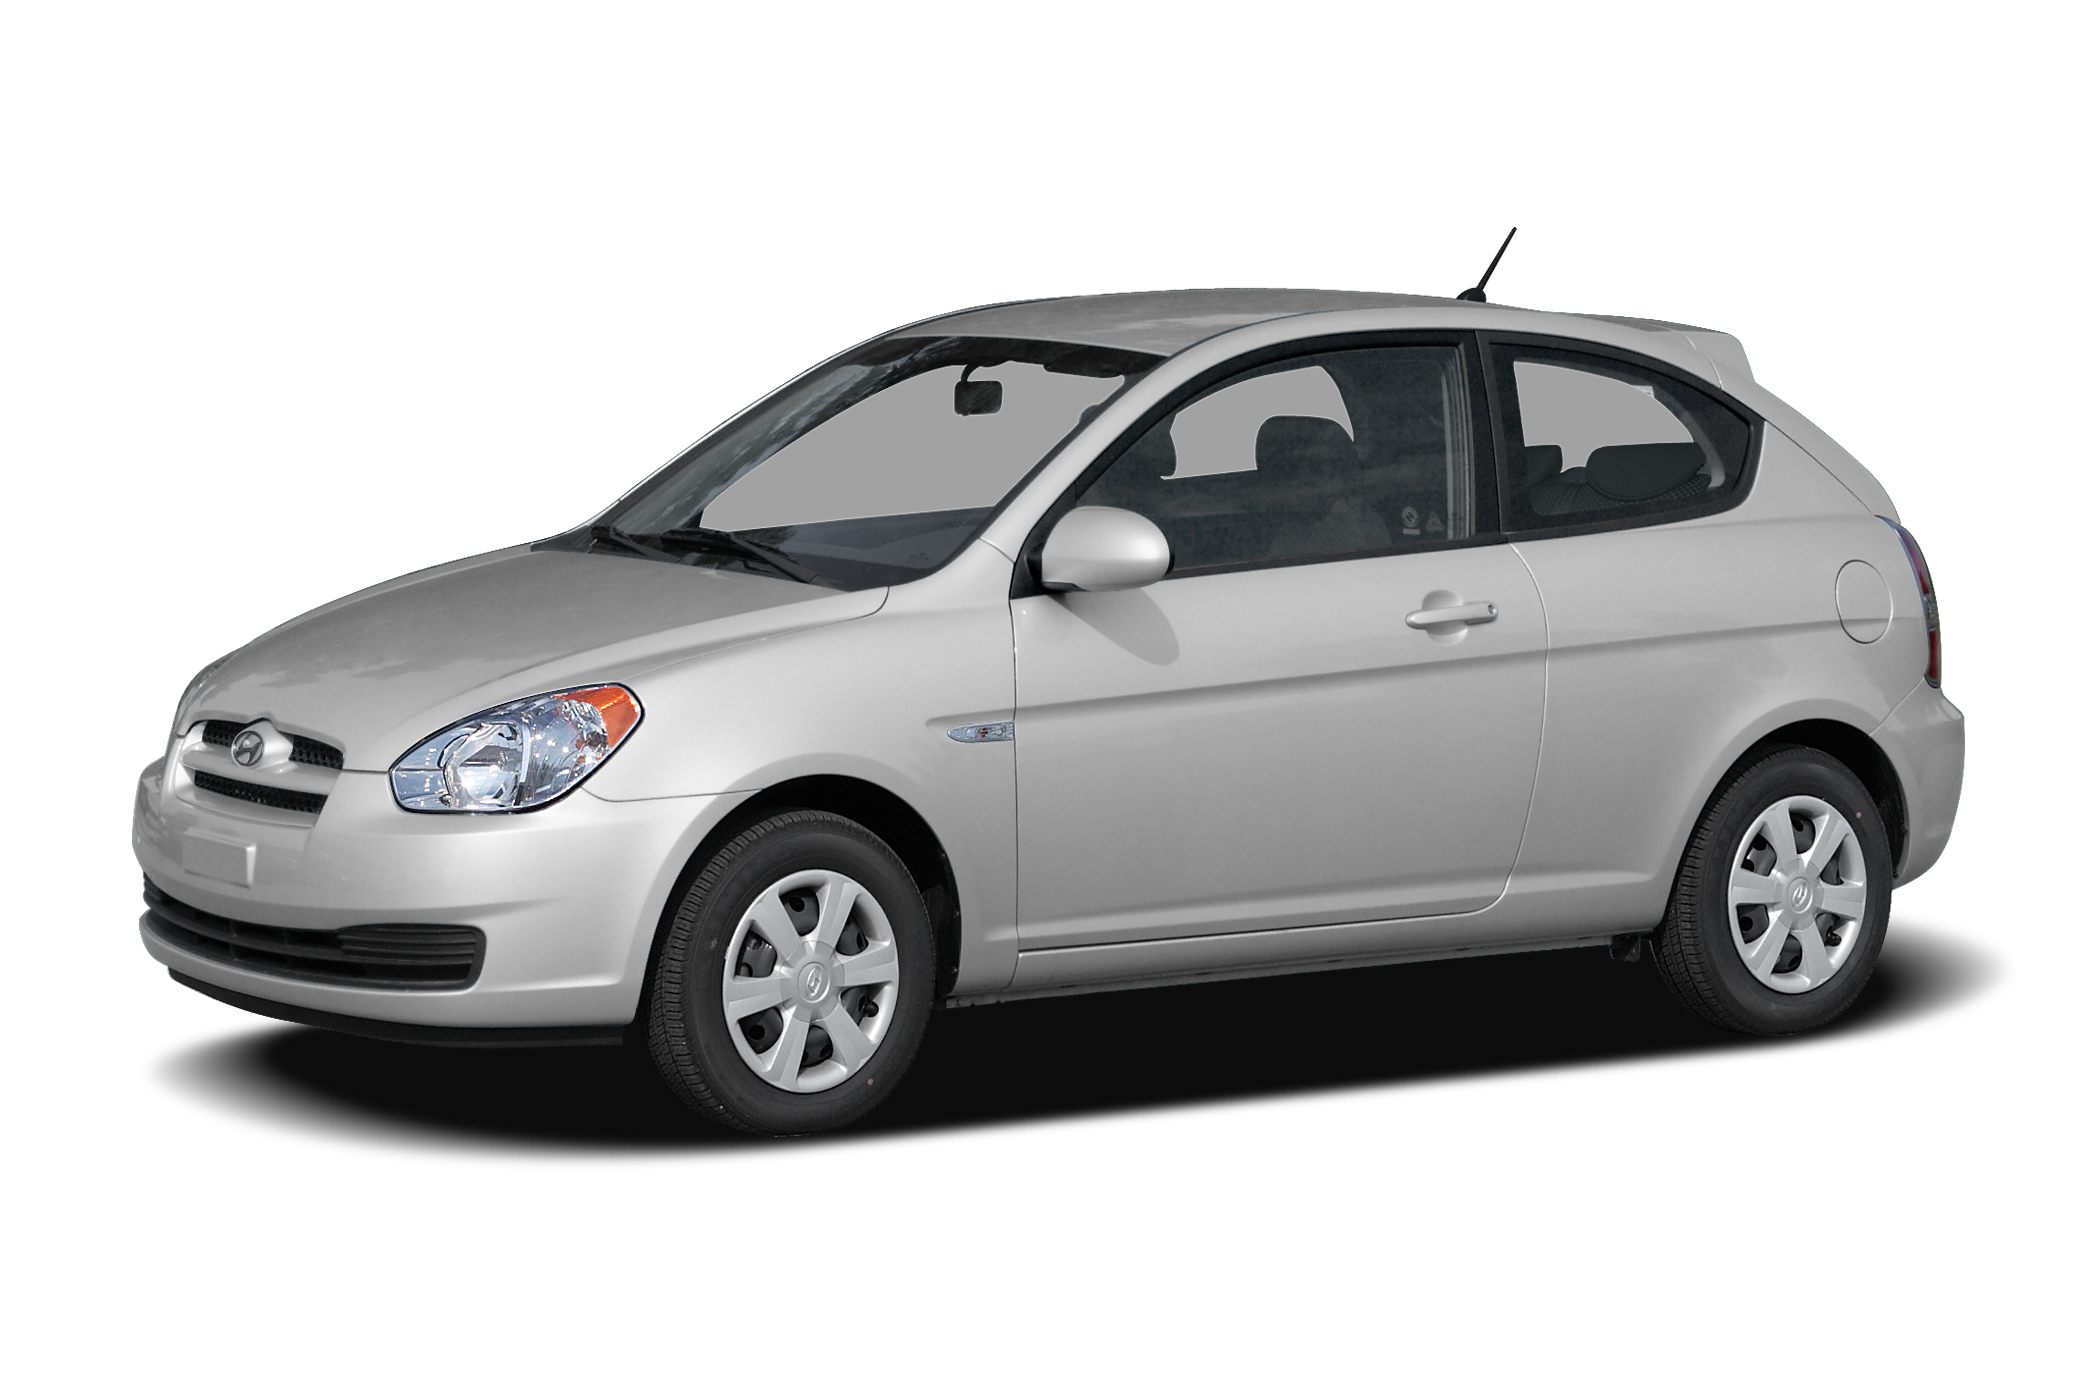 2008 Hyundai Accent GS Hatchback for sale in Pittsburgh for $8,777 with 21,000 miles